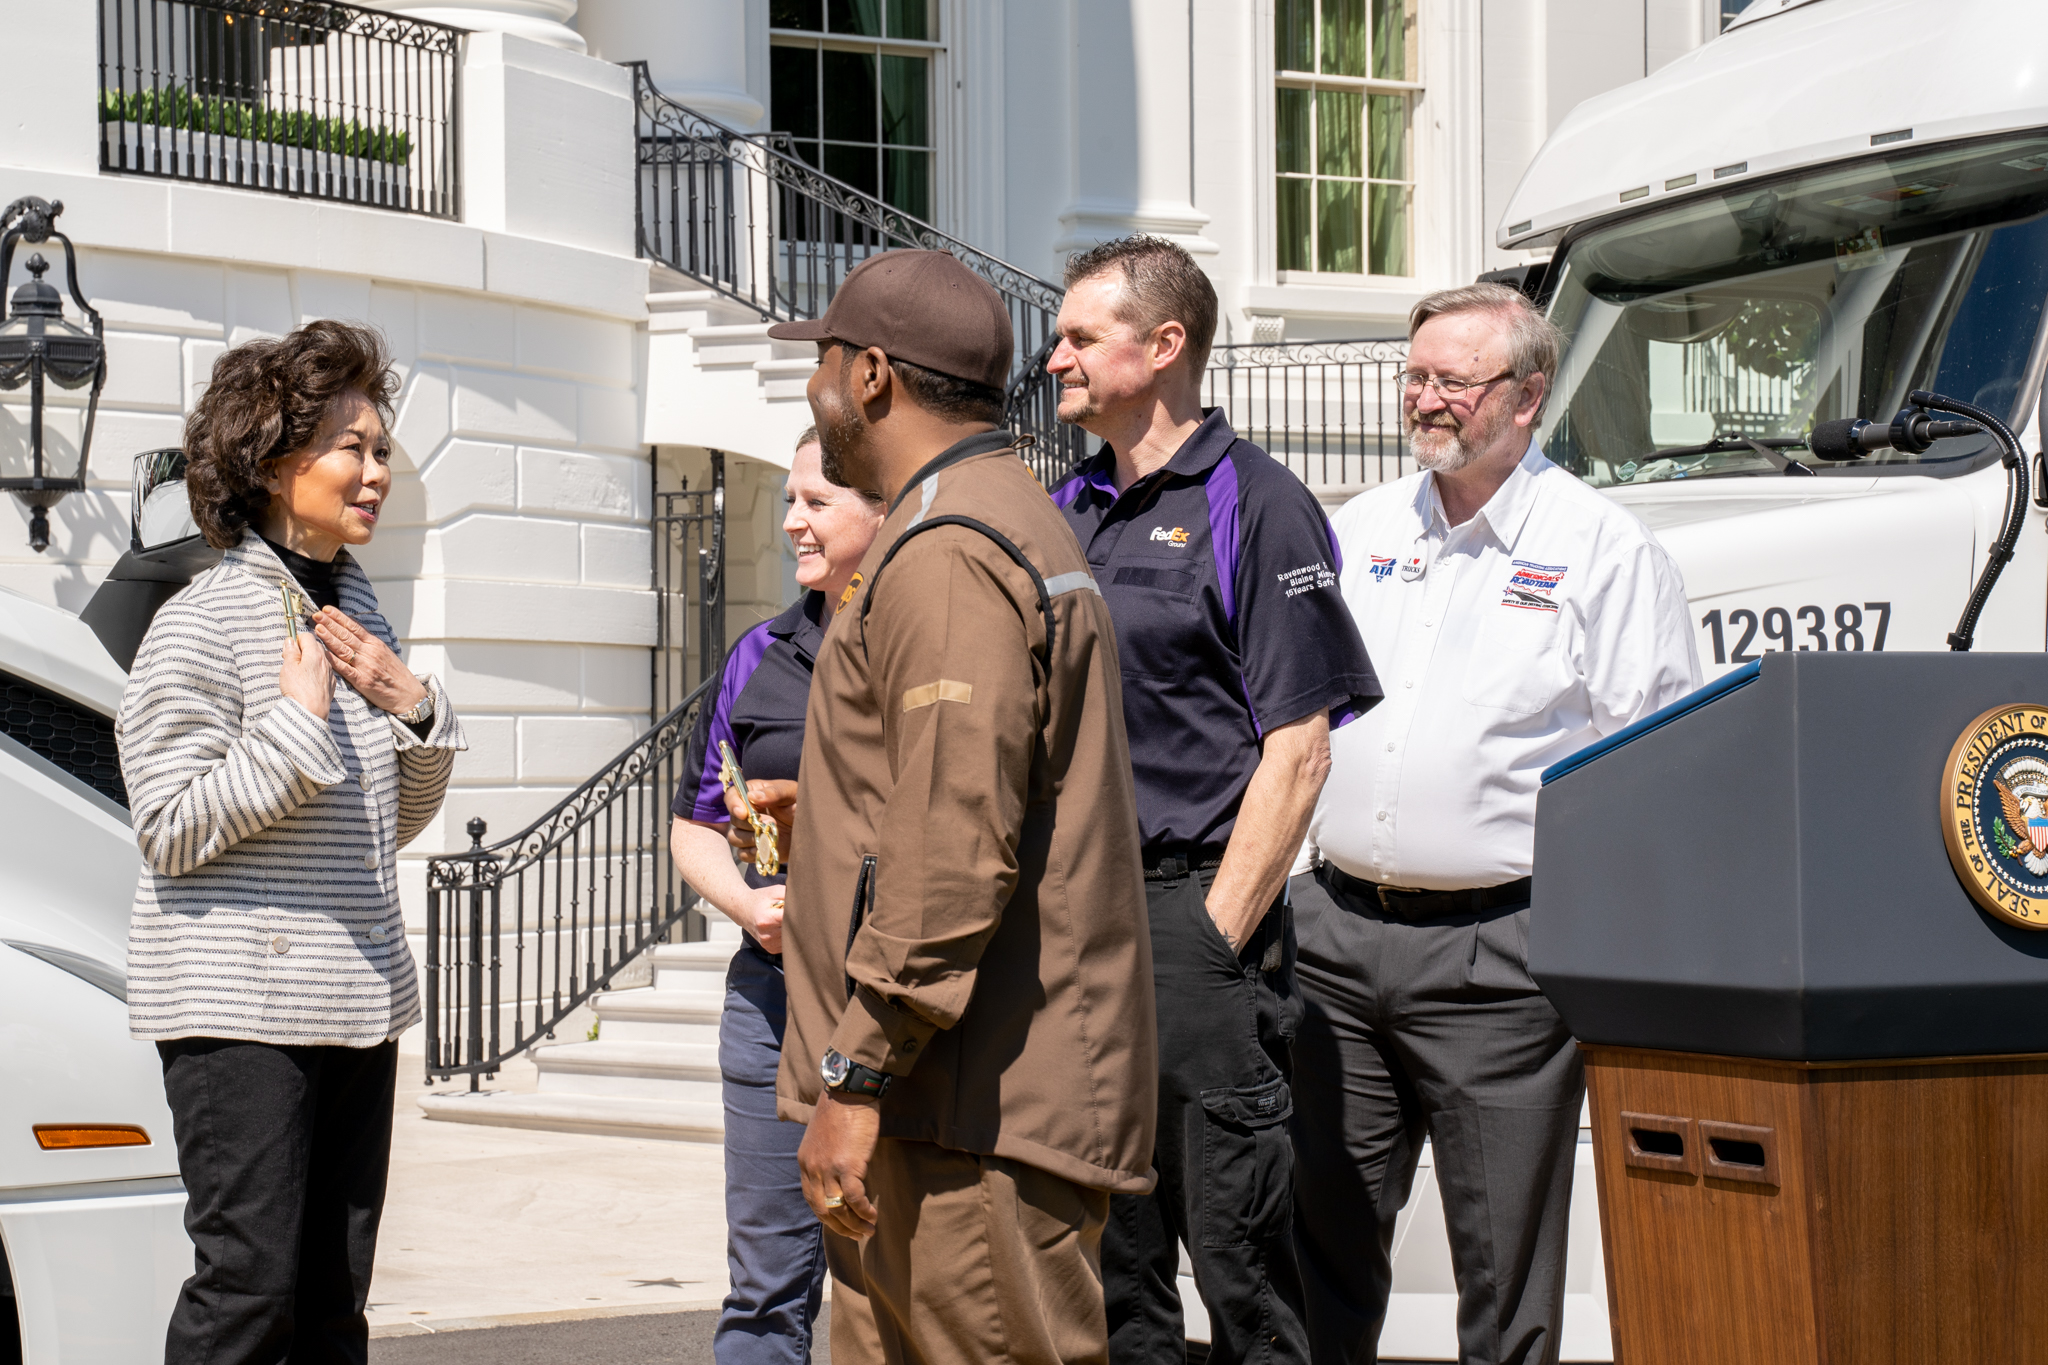 Truckers at the White House